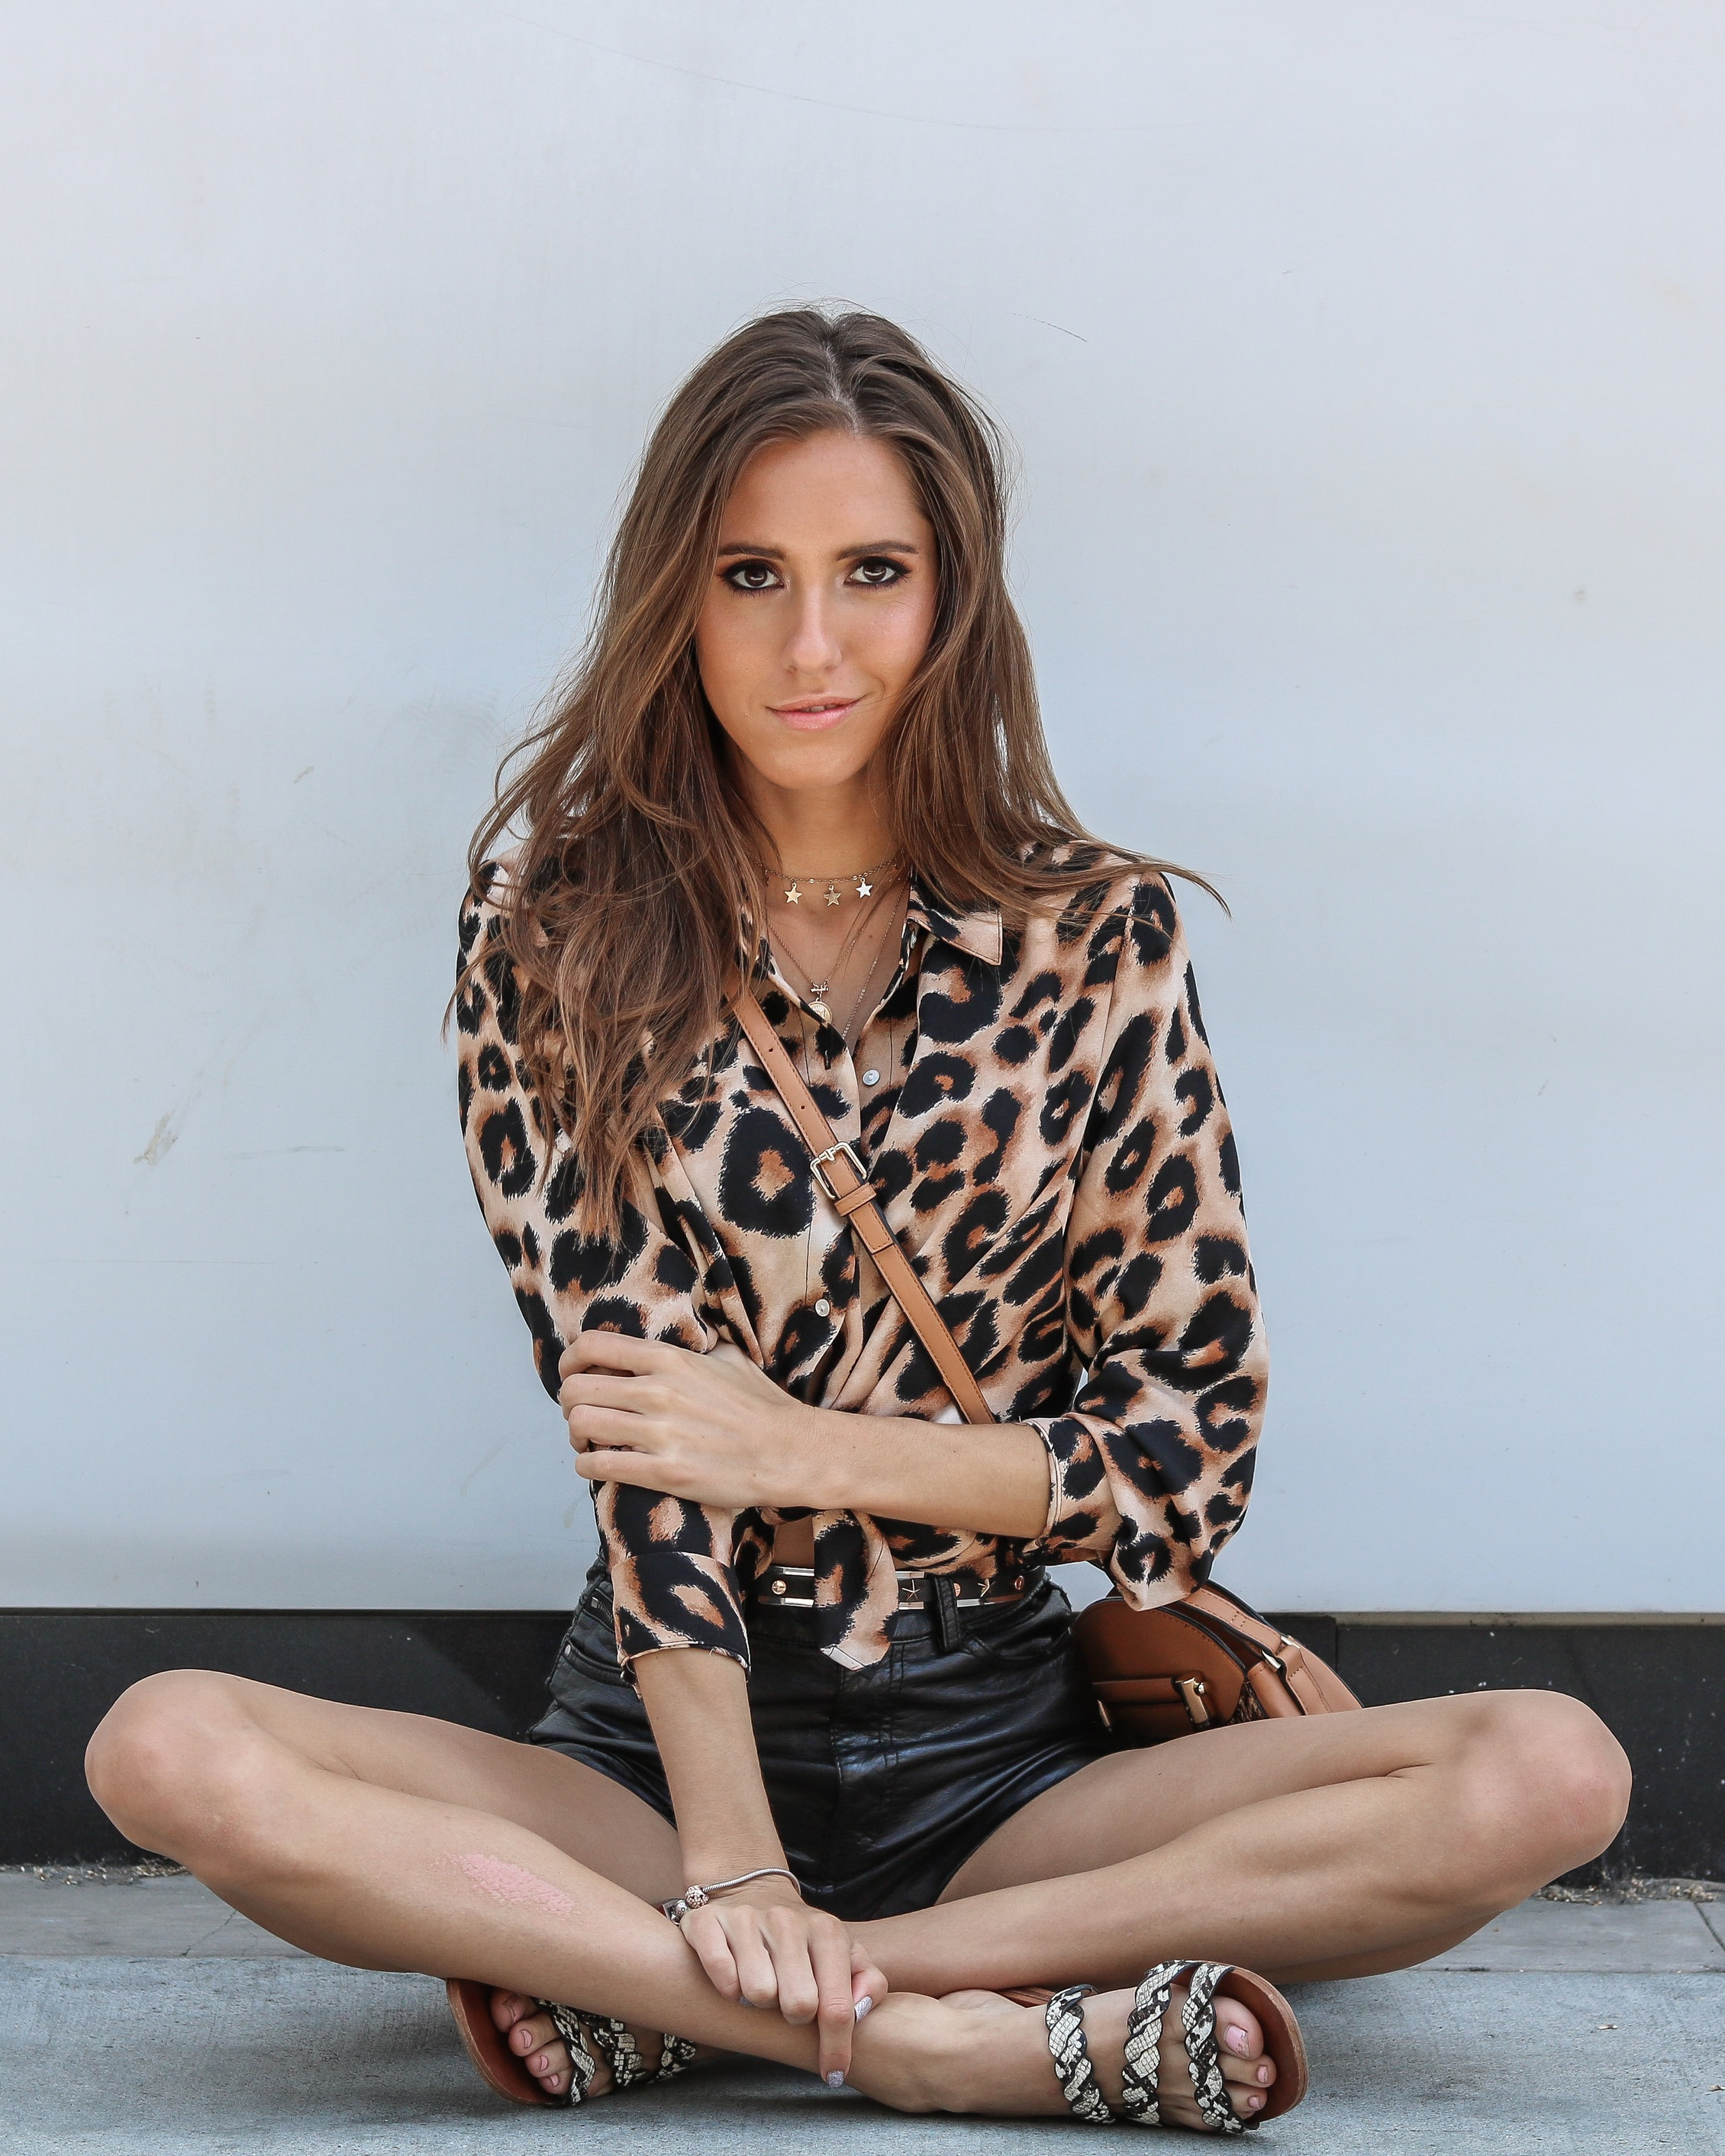 The+Hungarian+Brunette+leopard+%285+of+10%29.jpg